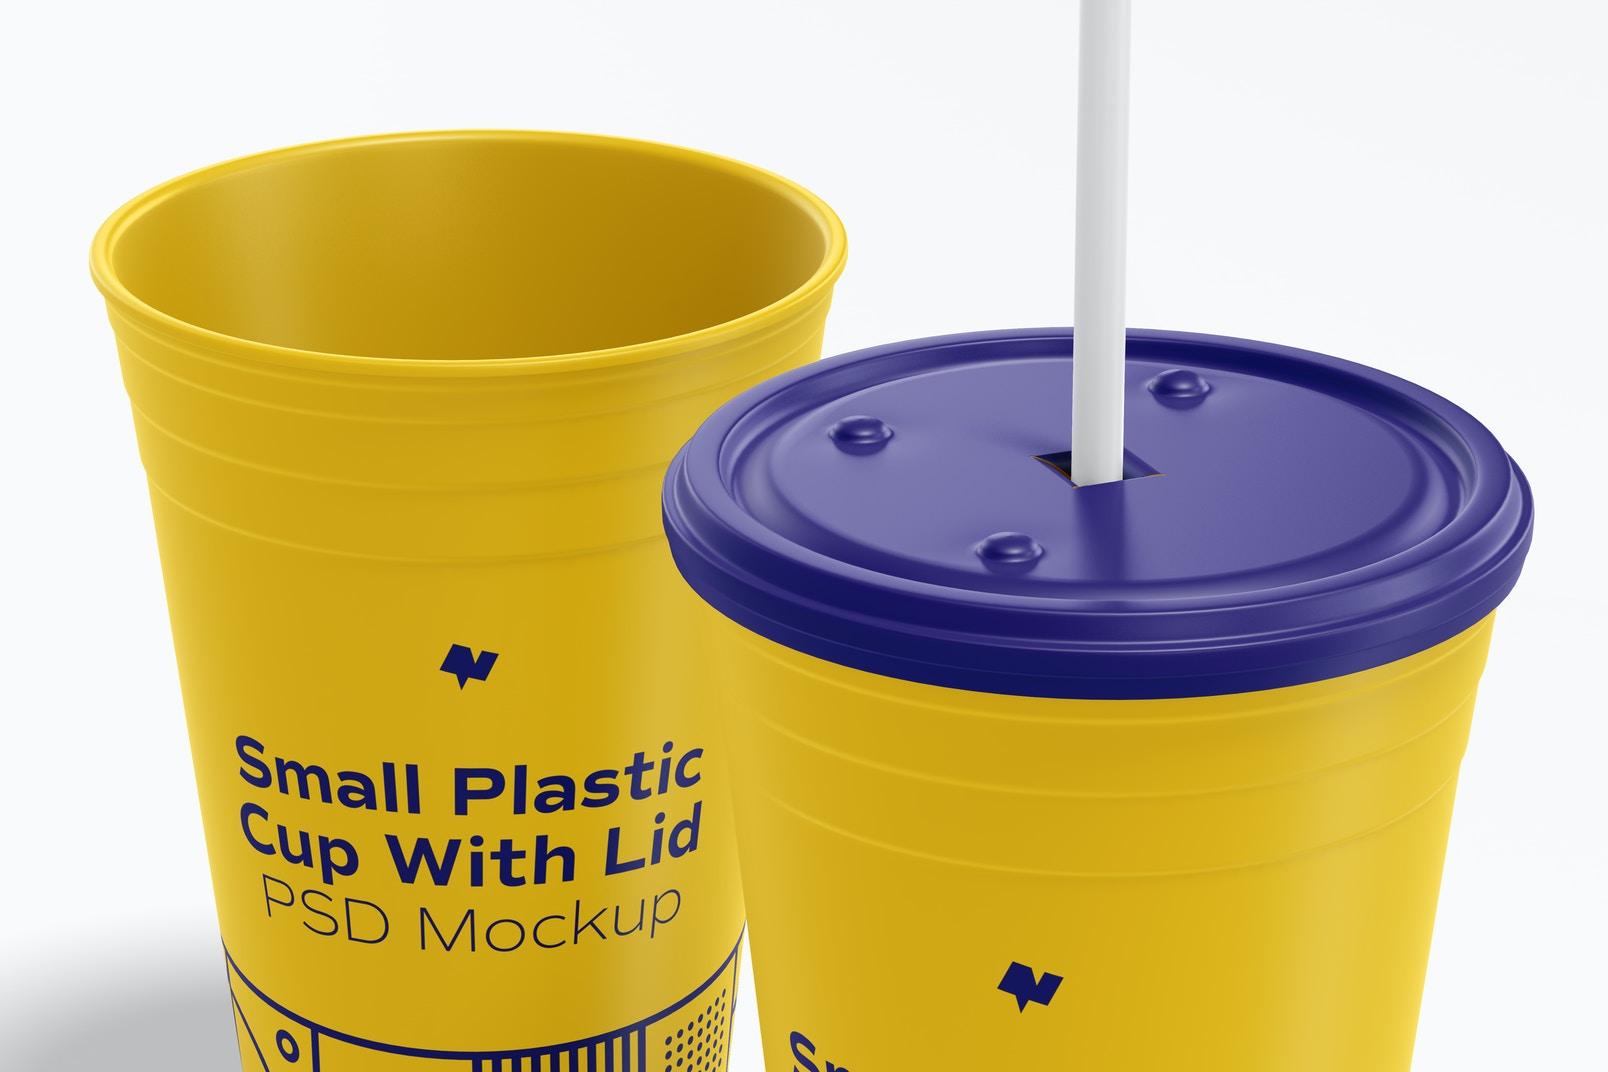 Small Plastic Cup with Lid Mockup, Close Up